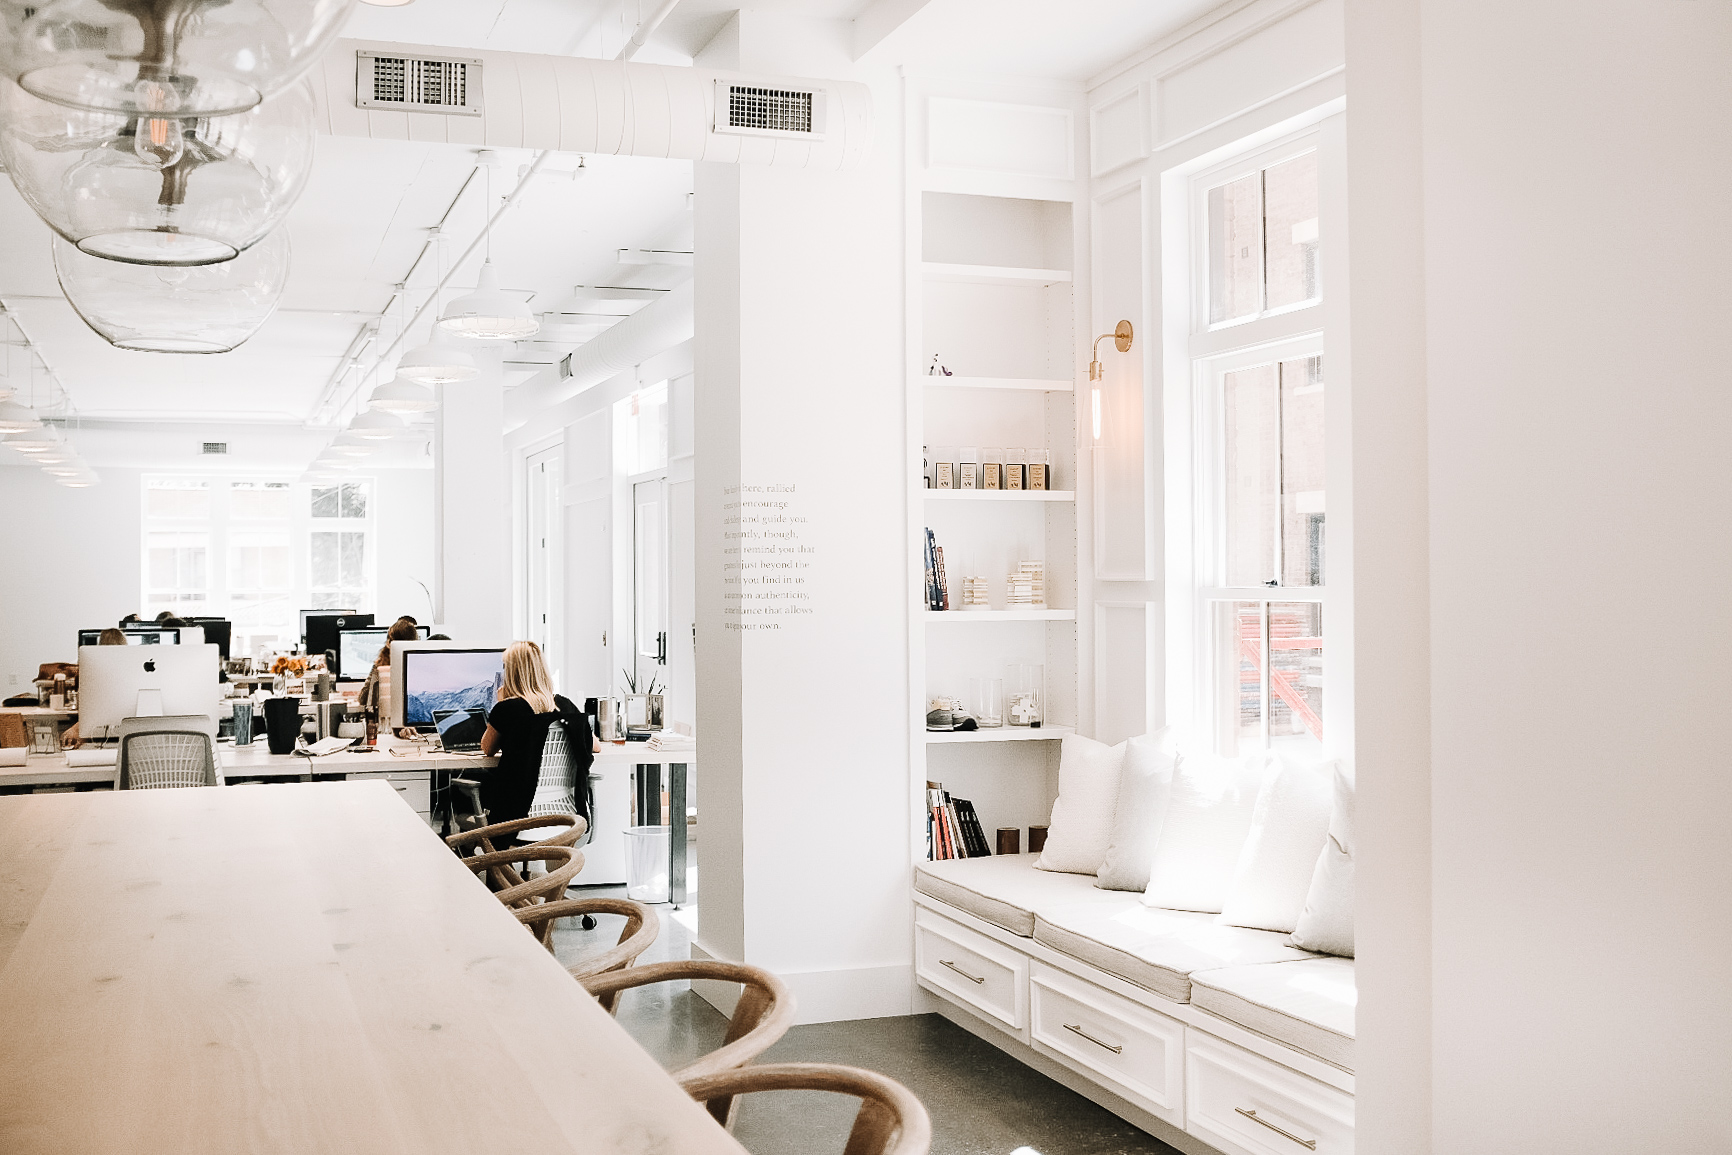 visit the Design Studio - WIth open desking and a 16-foot family table, the Design Studio gets the creative juices flowing for team TENFOLD.